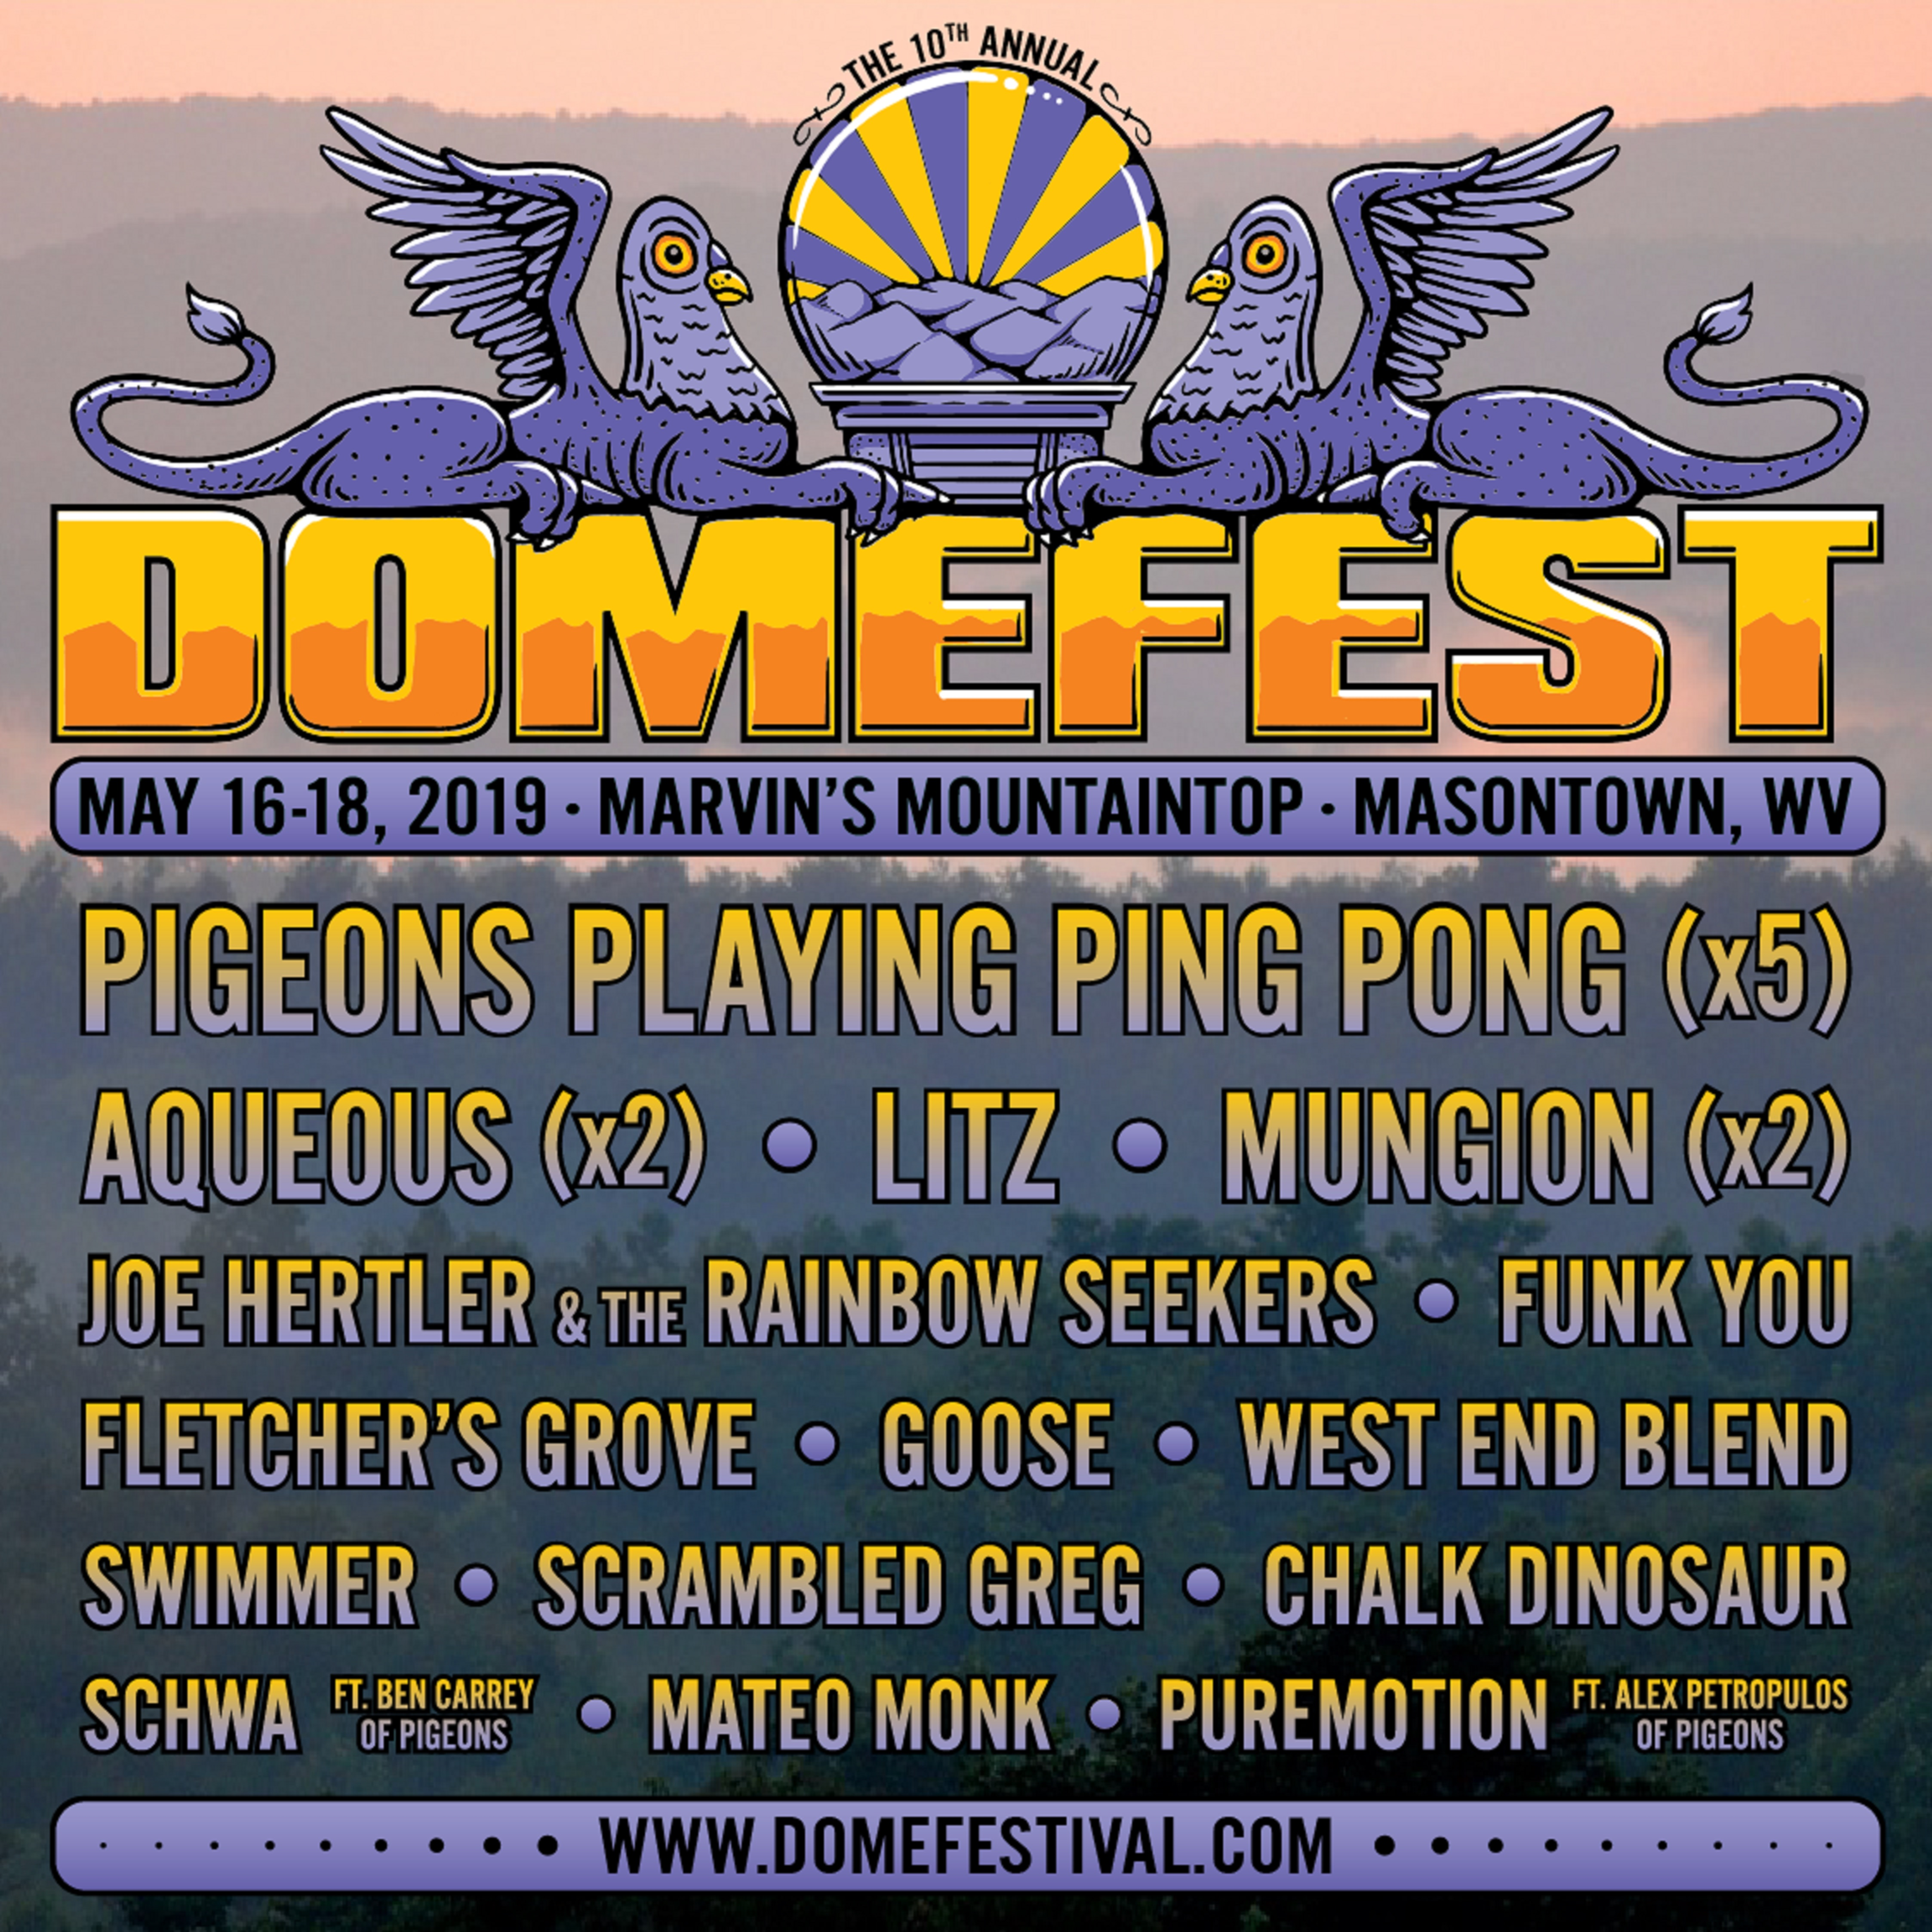 Pigeons Playing Ping Pong Share Initial Lineup For 10th Annual Domefest